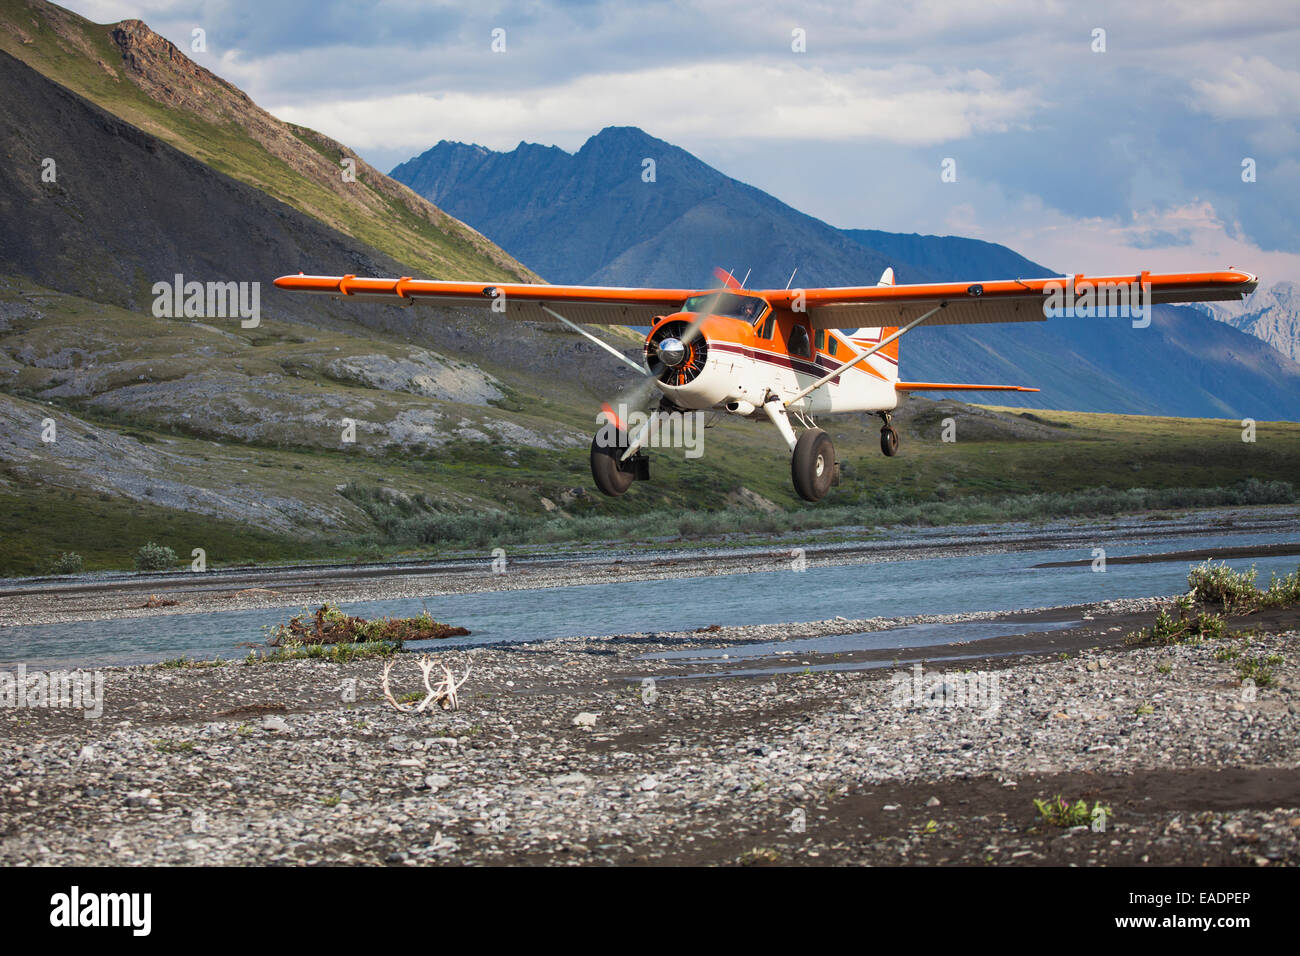 Bush Plane,Canning River,arctic refuge,Arriving - Stock Image